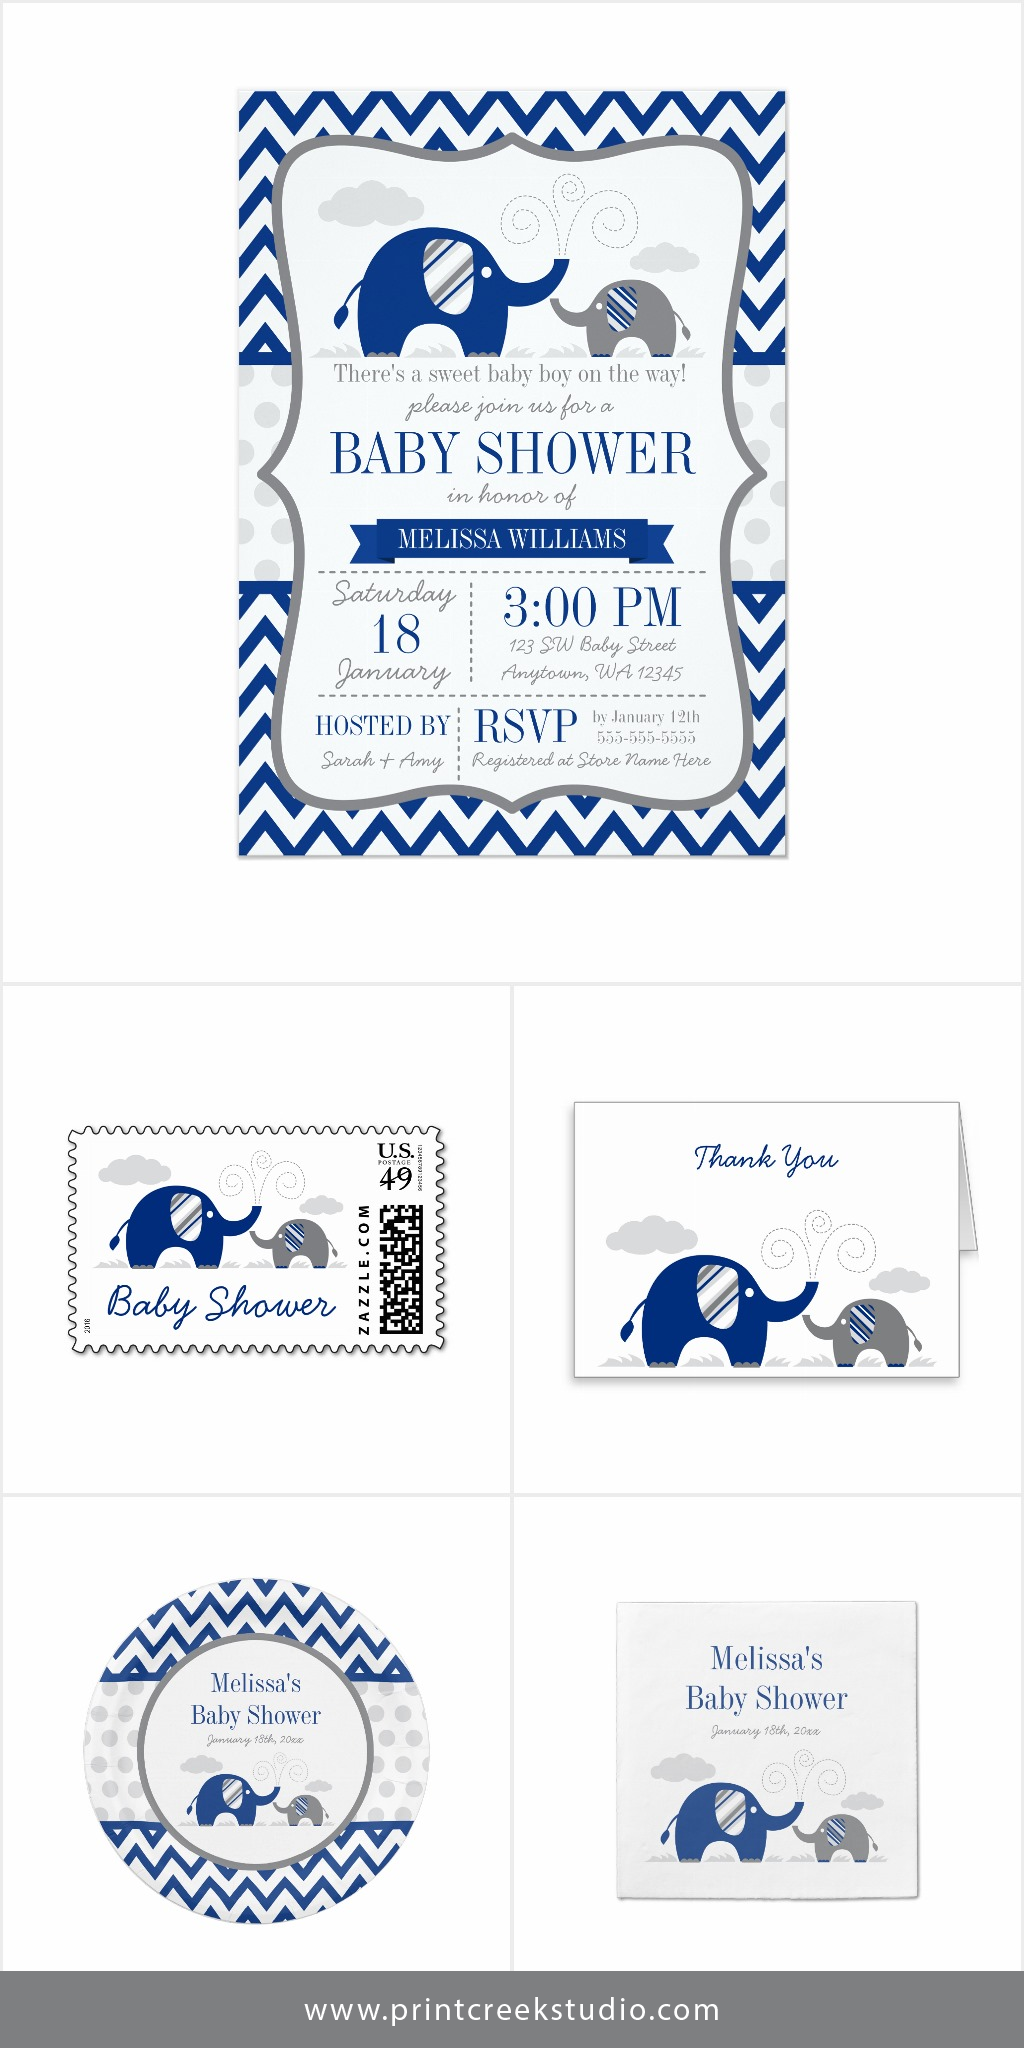 A Modern Navy Blue And Gray Elephant Themed Baby Shower